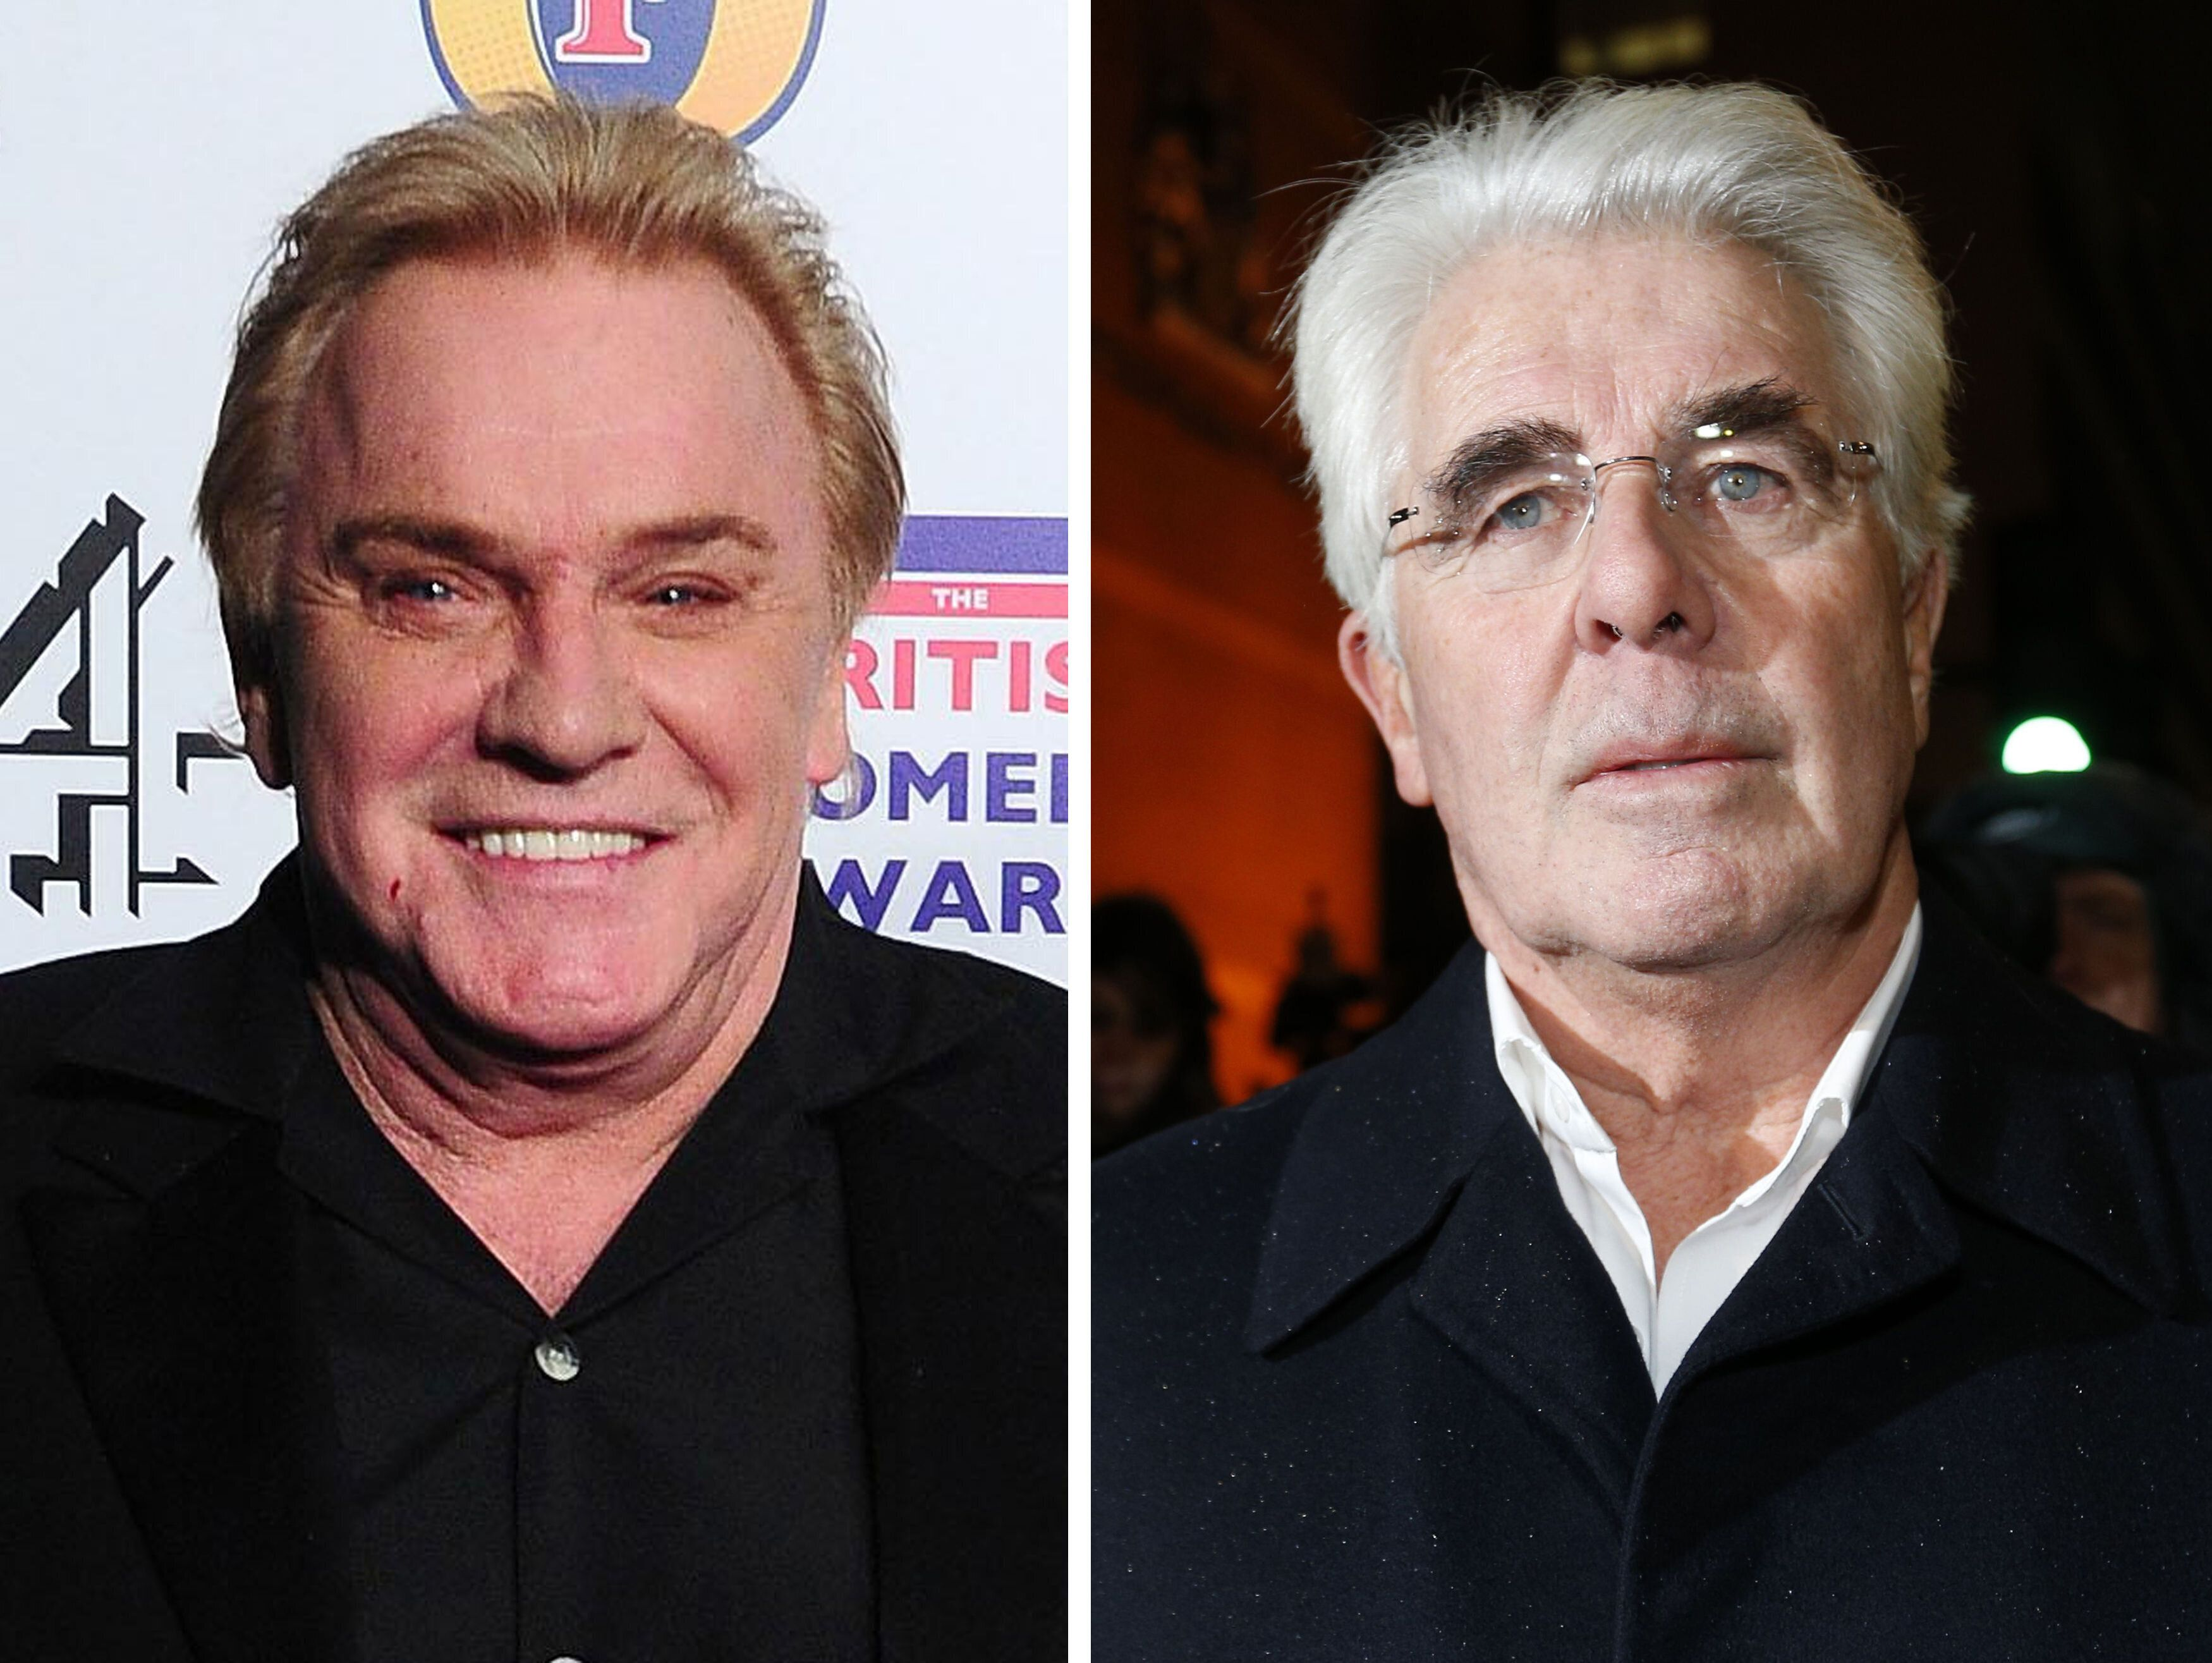 Freddie Starr (left) and Max Clifford.  (Photo by Ian West/PA Images via Getty Images)